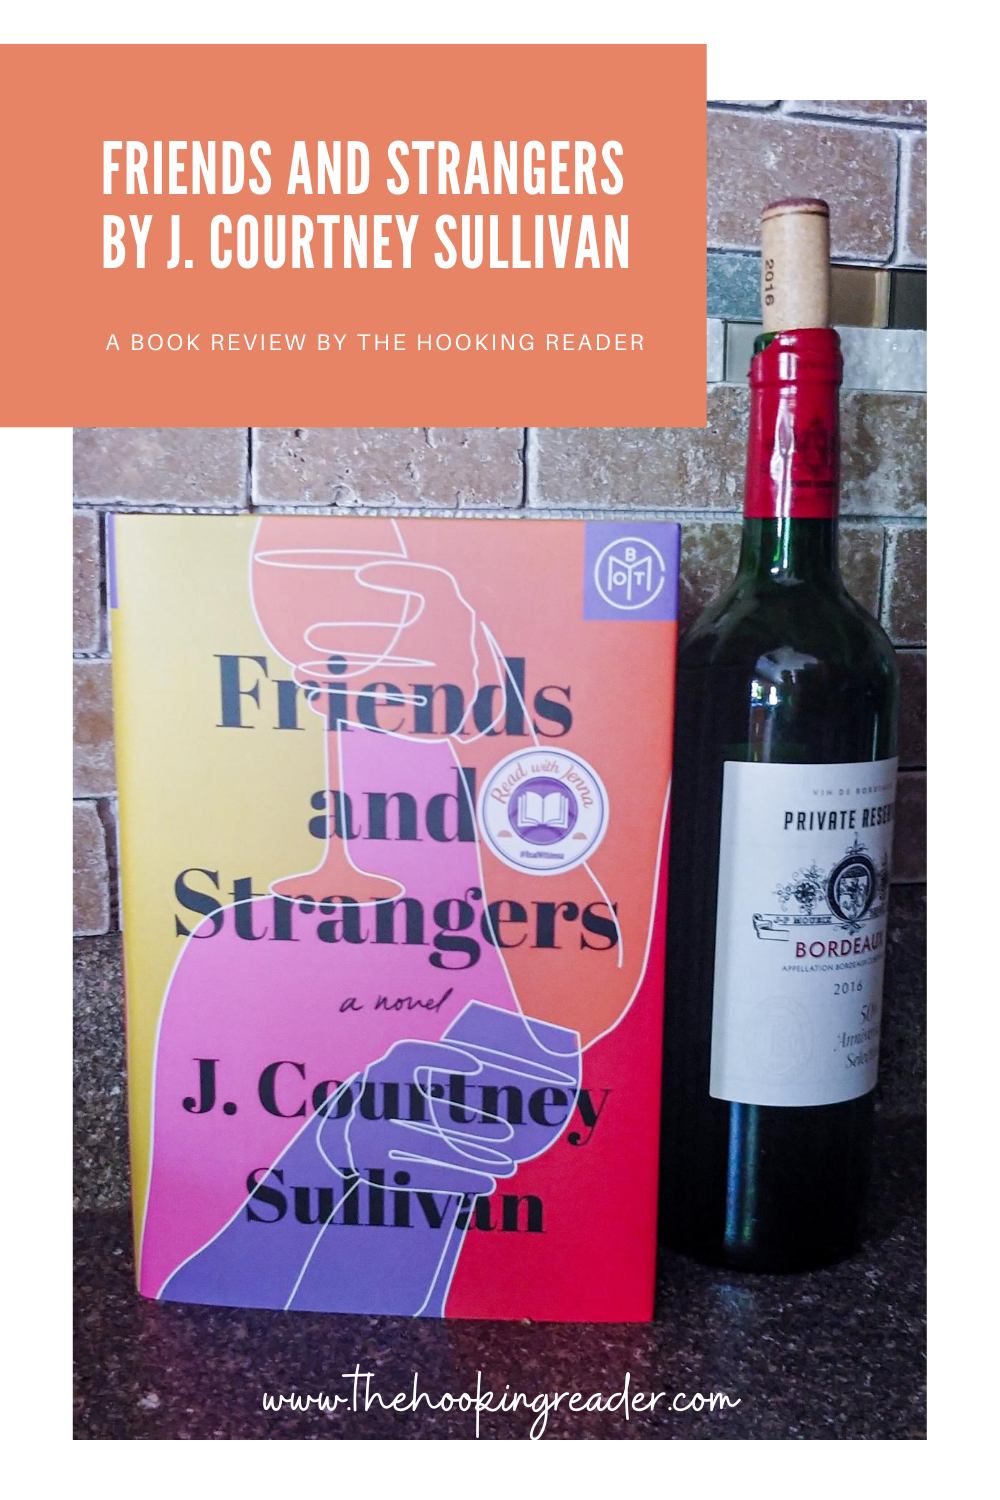 Book Review: Friends and Strangers by J Courtney Sullivan